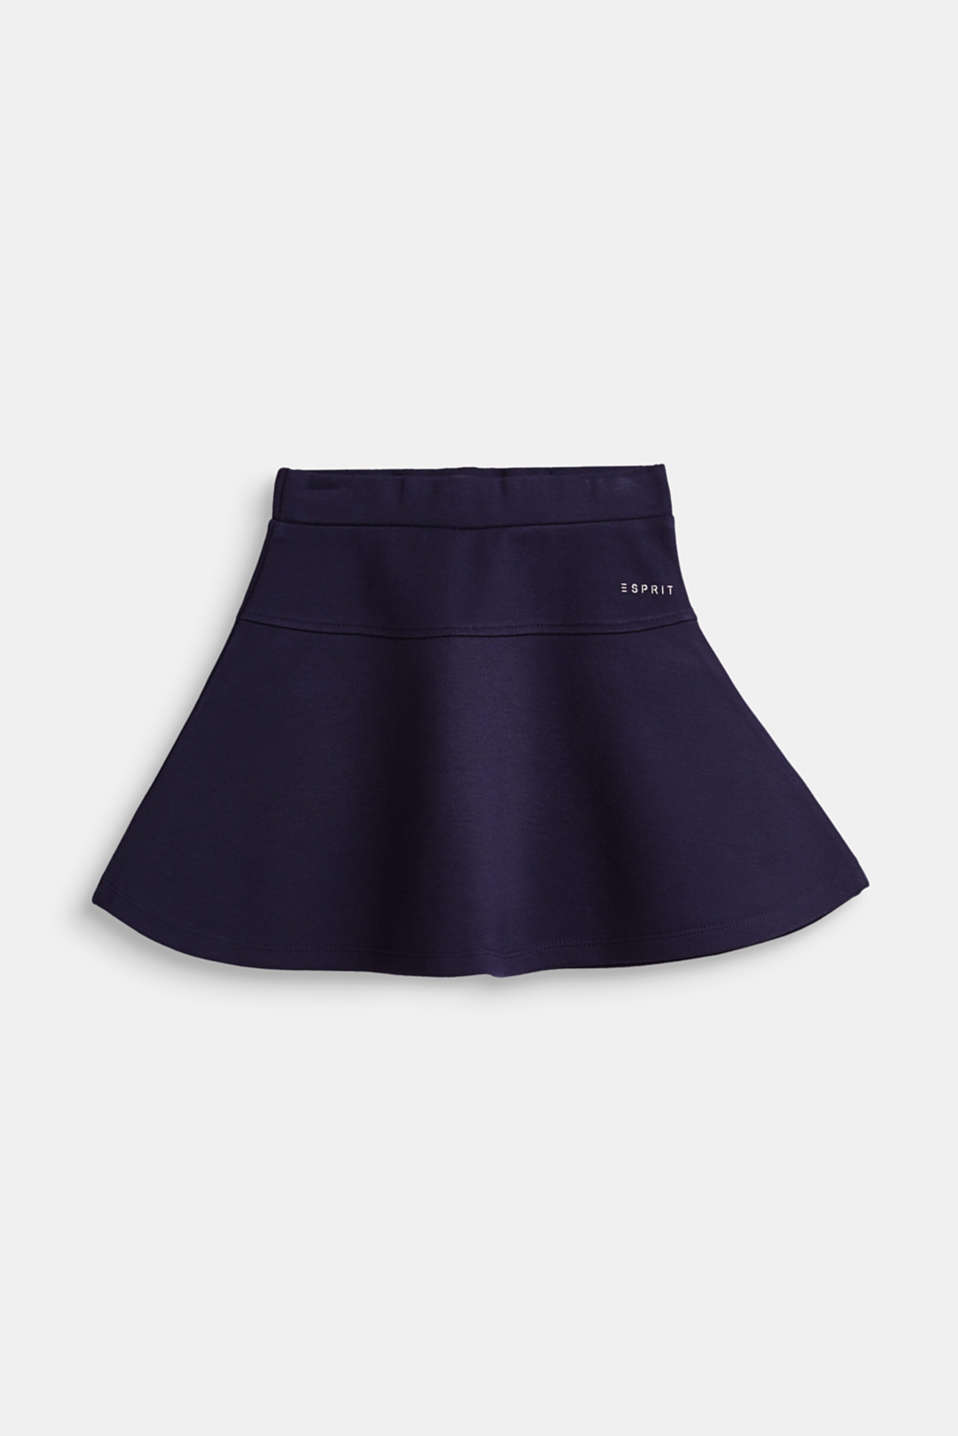 Esprit - A-line skirt made of compact stretch jersey